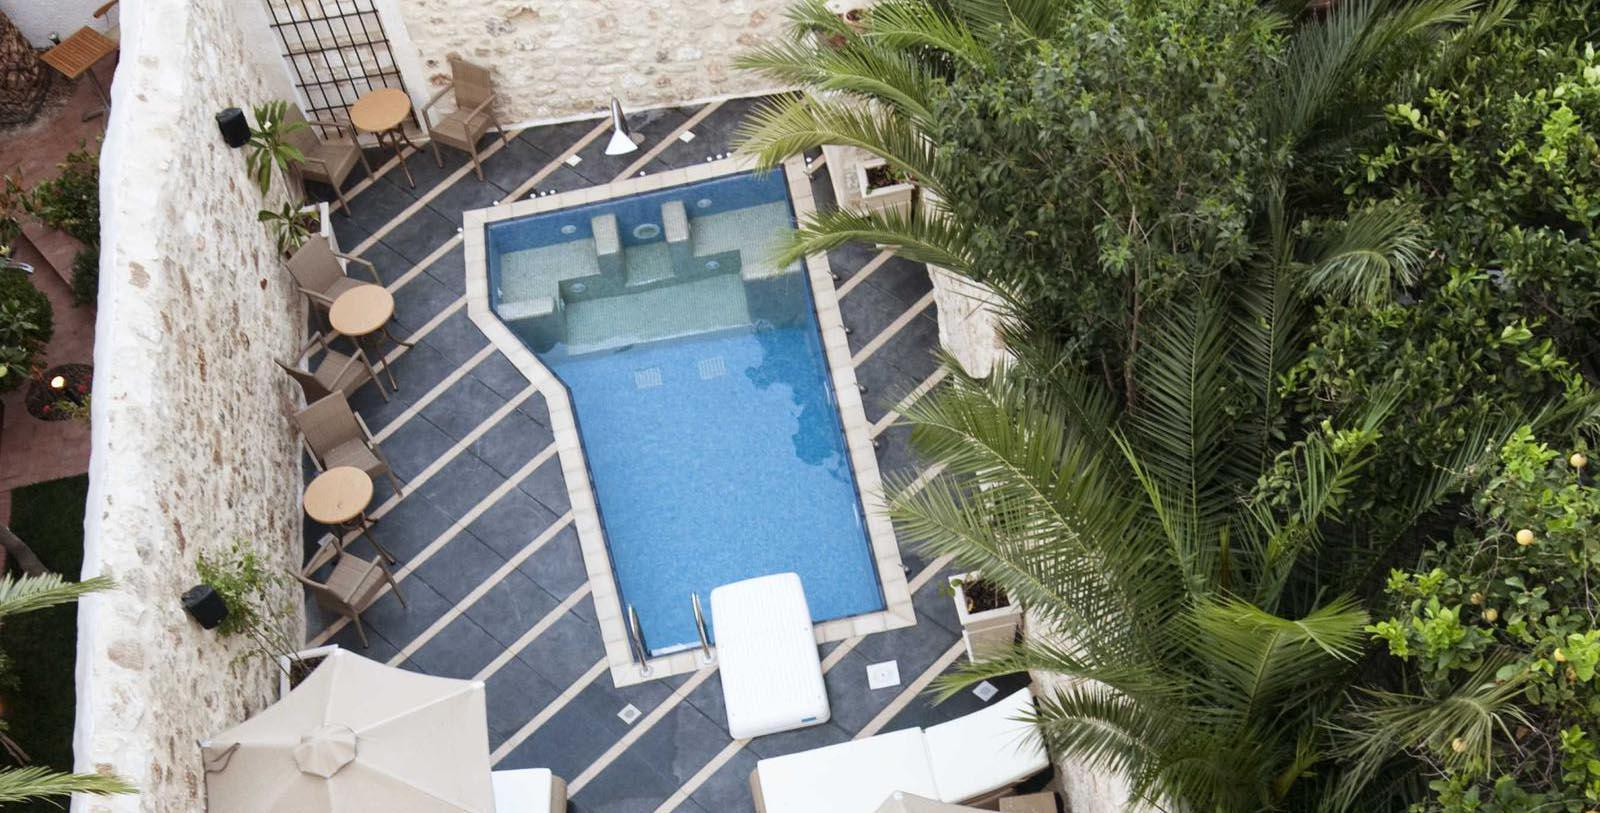 Image of aerial view of outdoor pool Antica Dimora Suites, 1820, Member of Historic Hotels Worldwide, in Crete, Greece, Explore